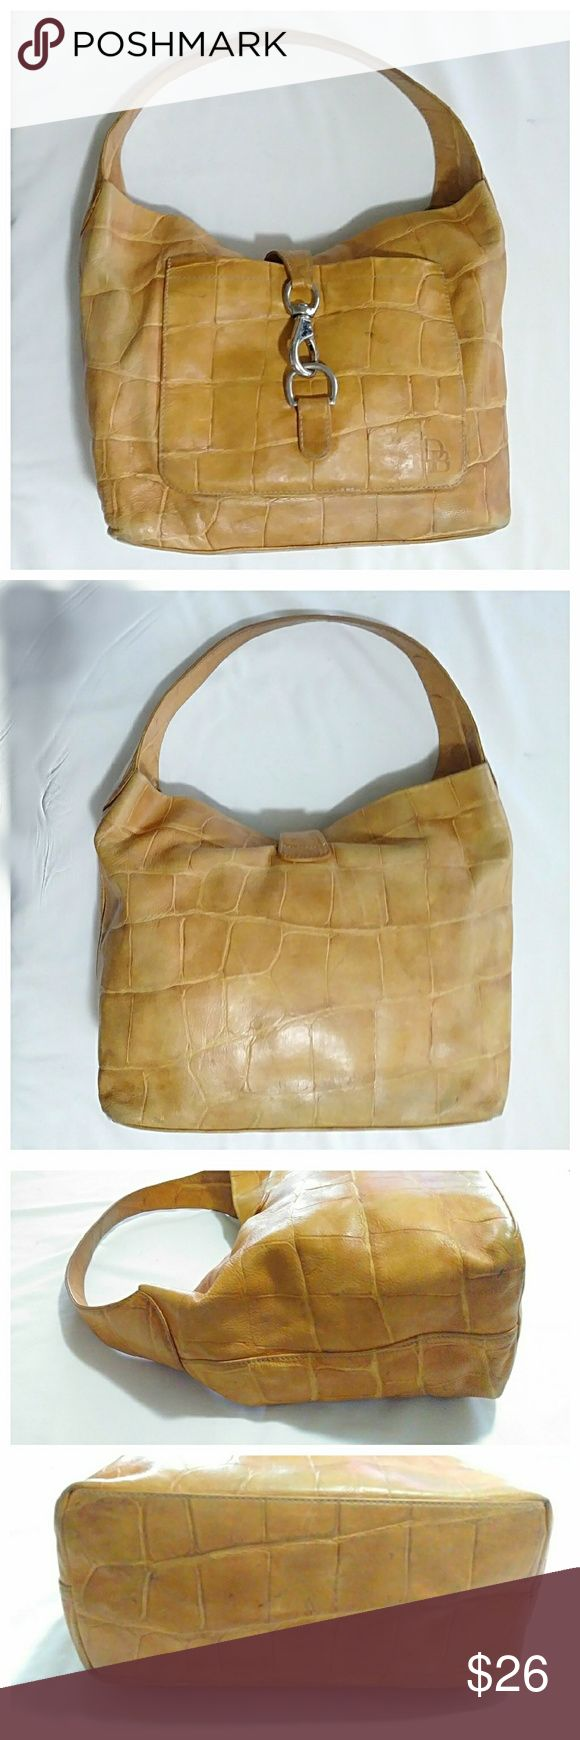 """Dooney & Bourke Croc Leather Hobo Old school Dooney with lots of room and semi-structured sides making it easier to find what you're looking for. As you can see it shows a lot of wear, but is in good shape overall. The color is a mustard/tan color. Measures 11"""" H x 12"""" L x 5"""" W + 8"""" strap drop. 💥 Reasonable Offers Accepted 💥 Dooney & Bourke Bags Hobos"""